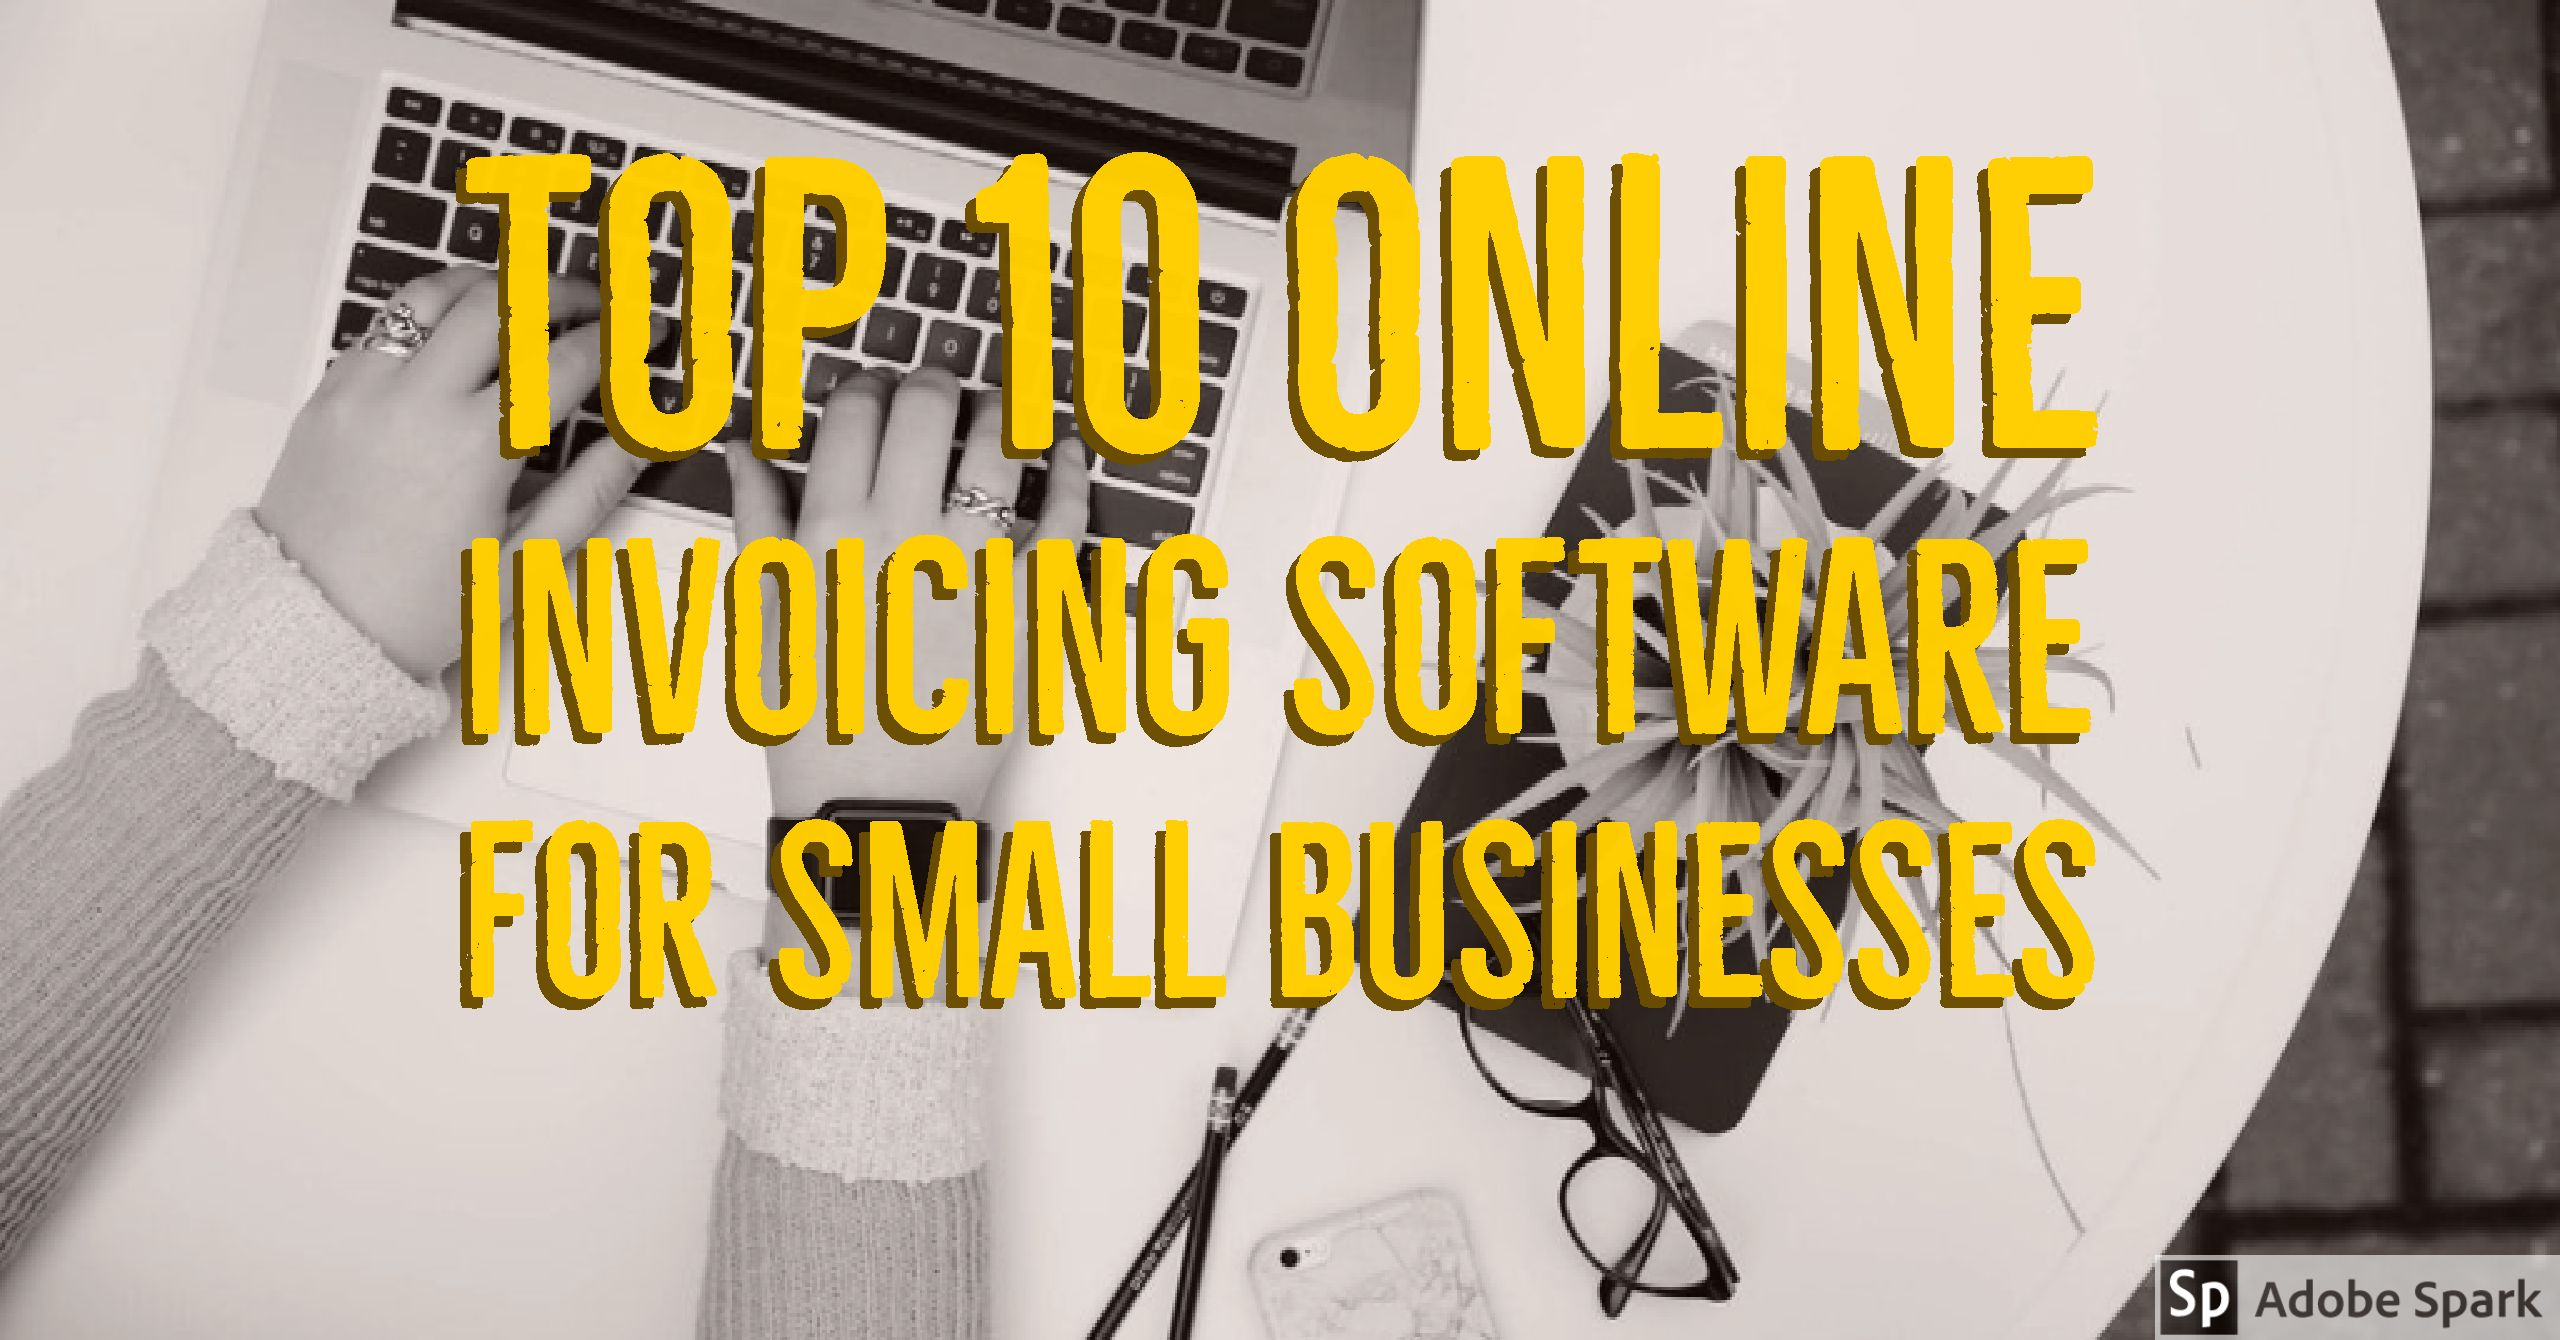 Top Invoicing Software For Small Businesses Software Ash And - Top 10 invoice software